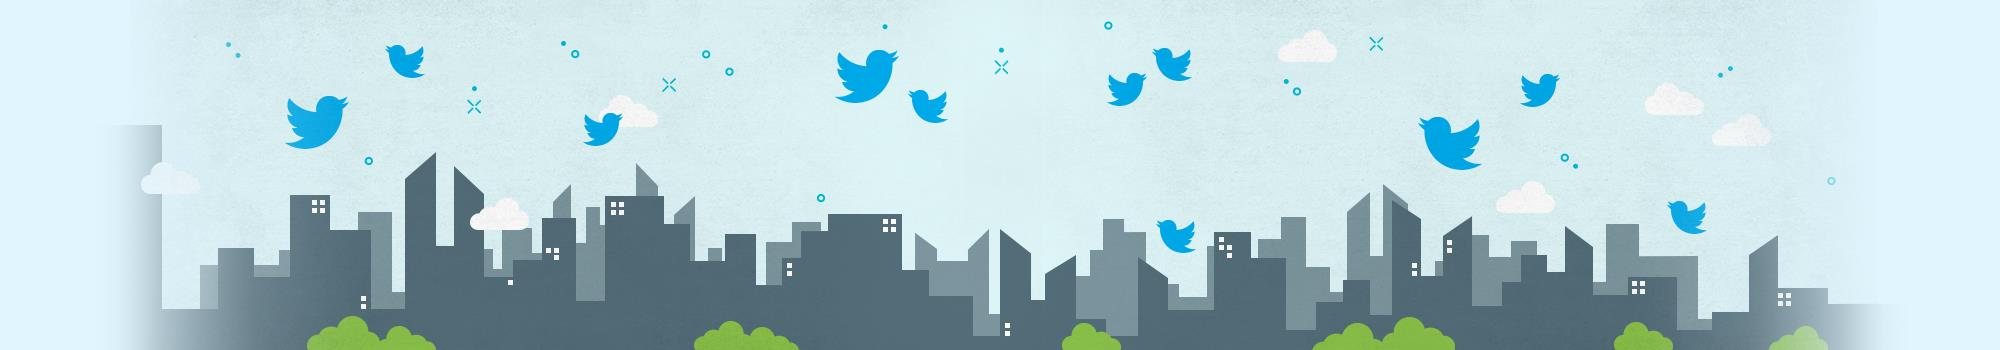 How to Stay Safe on Twitter   Ultimate Guide